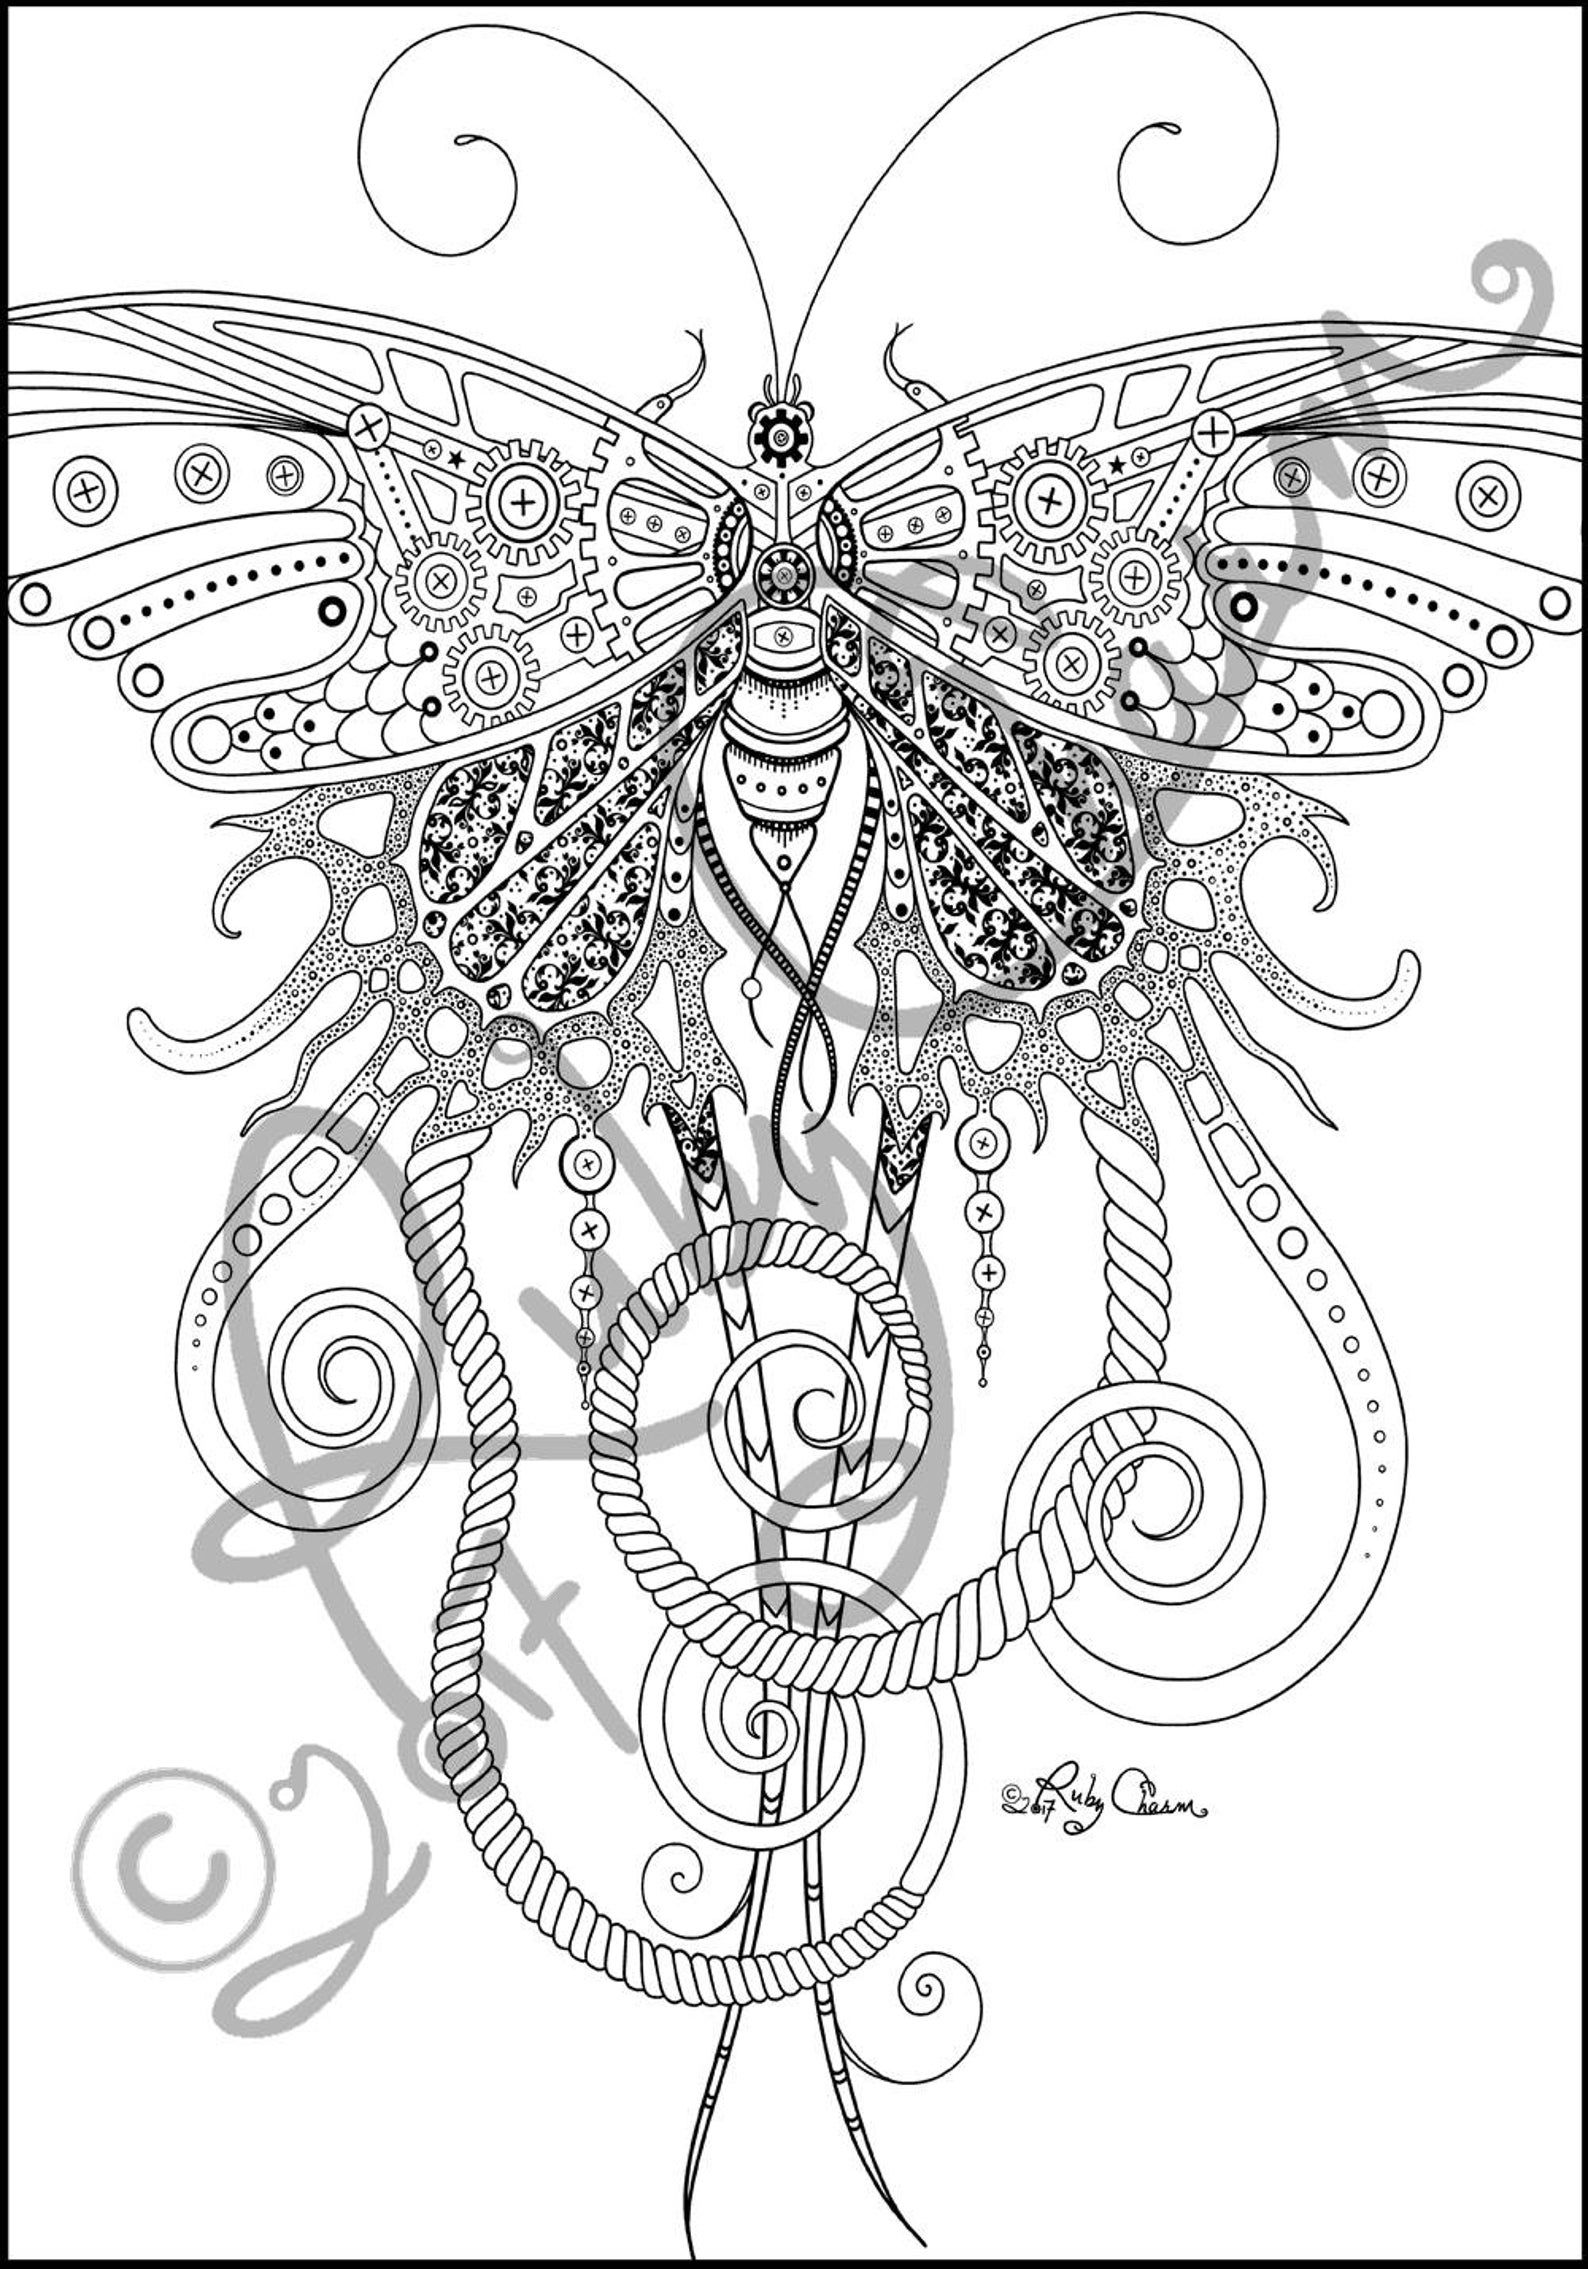 Pin On Steampunk Adult Coloring Books Pages [ 2269 x 1588 Pixel ]